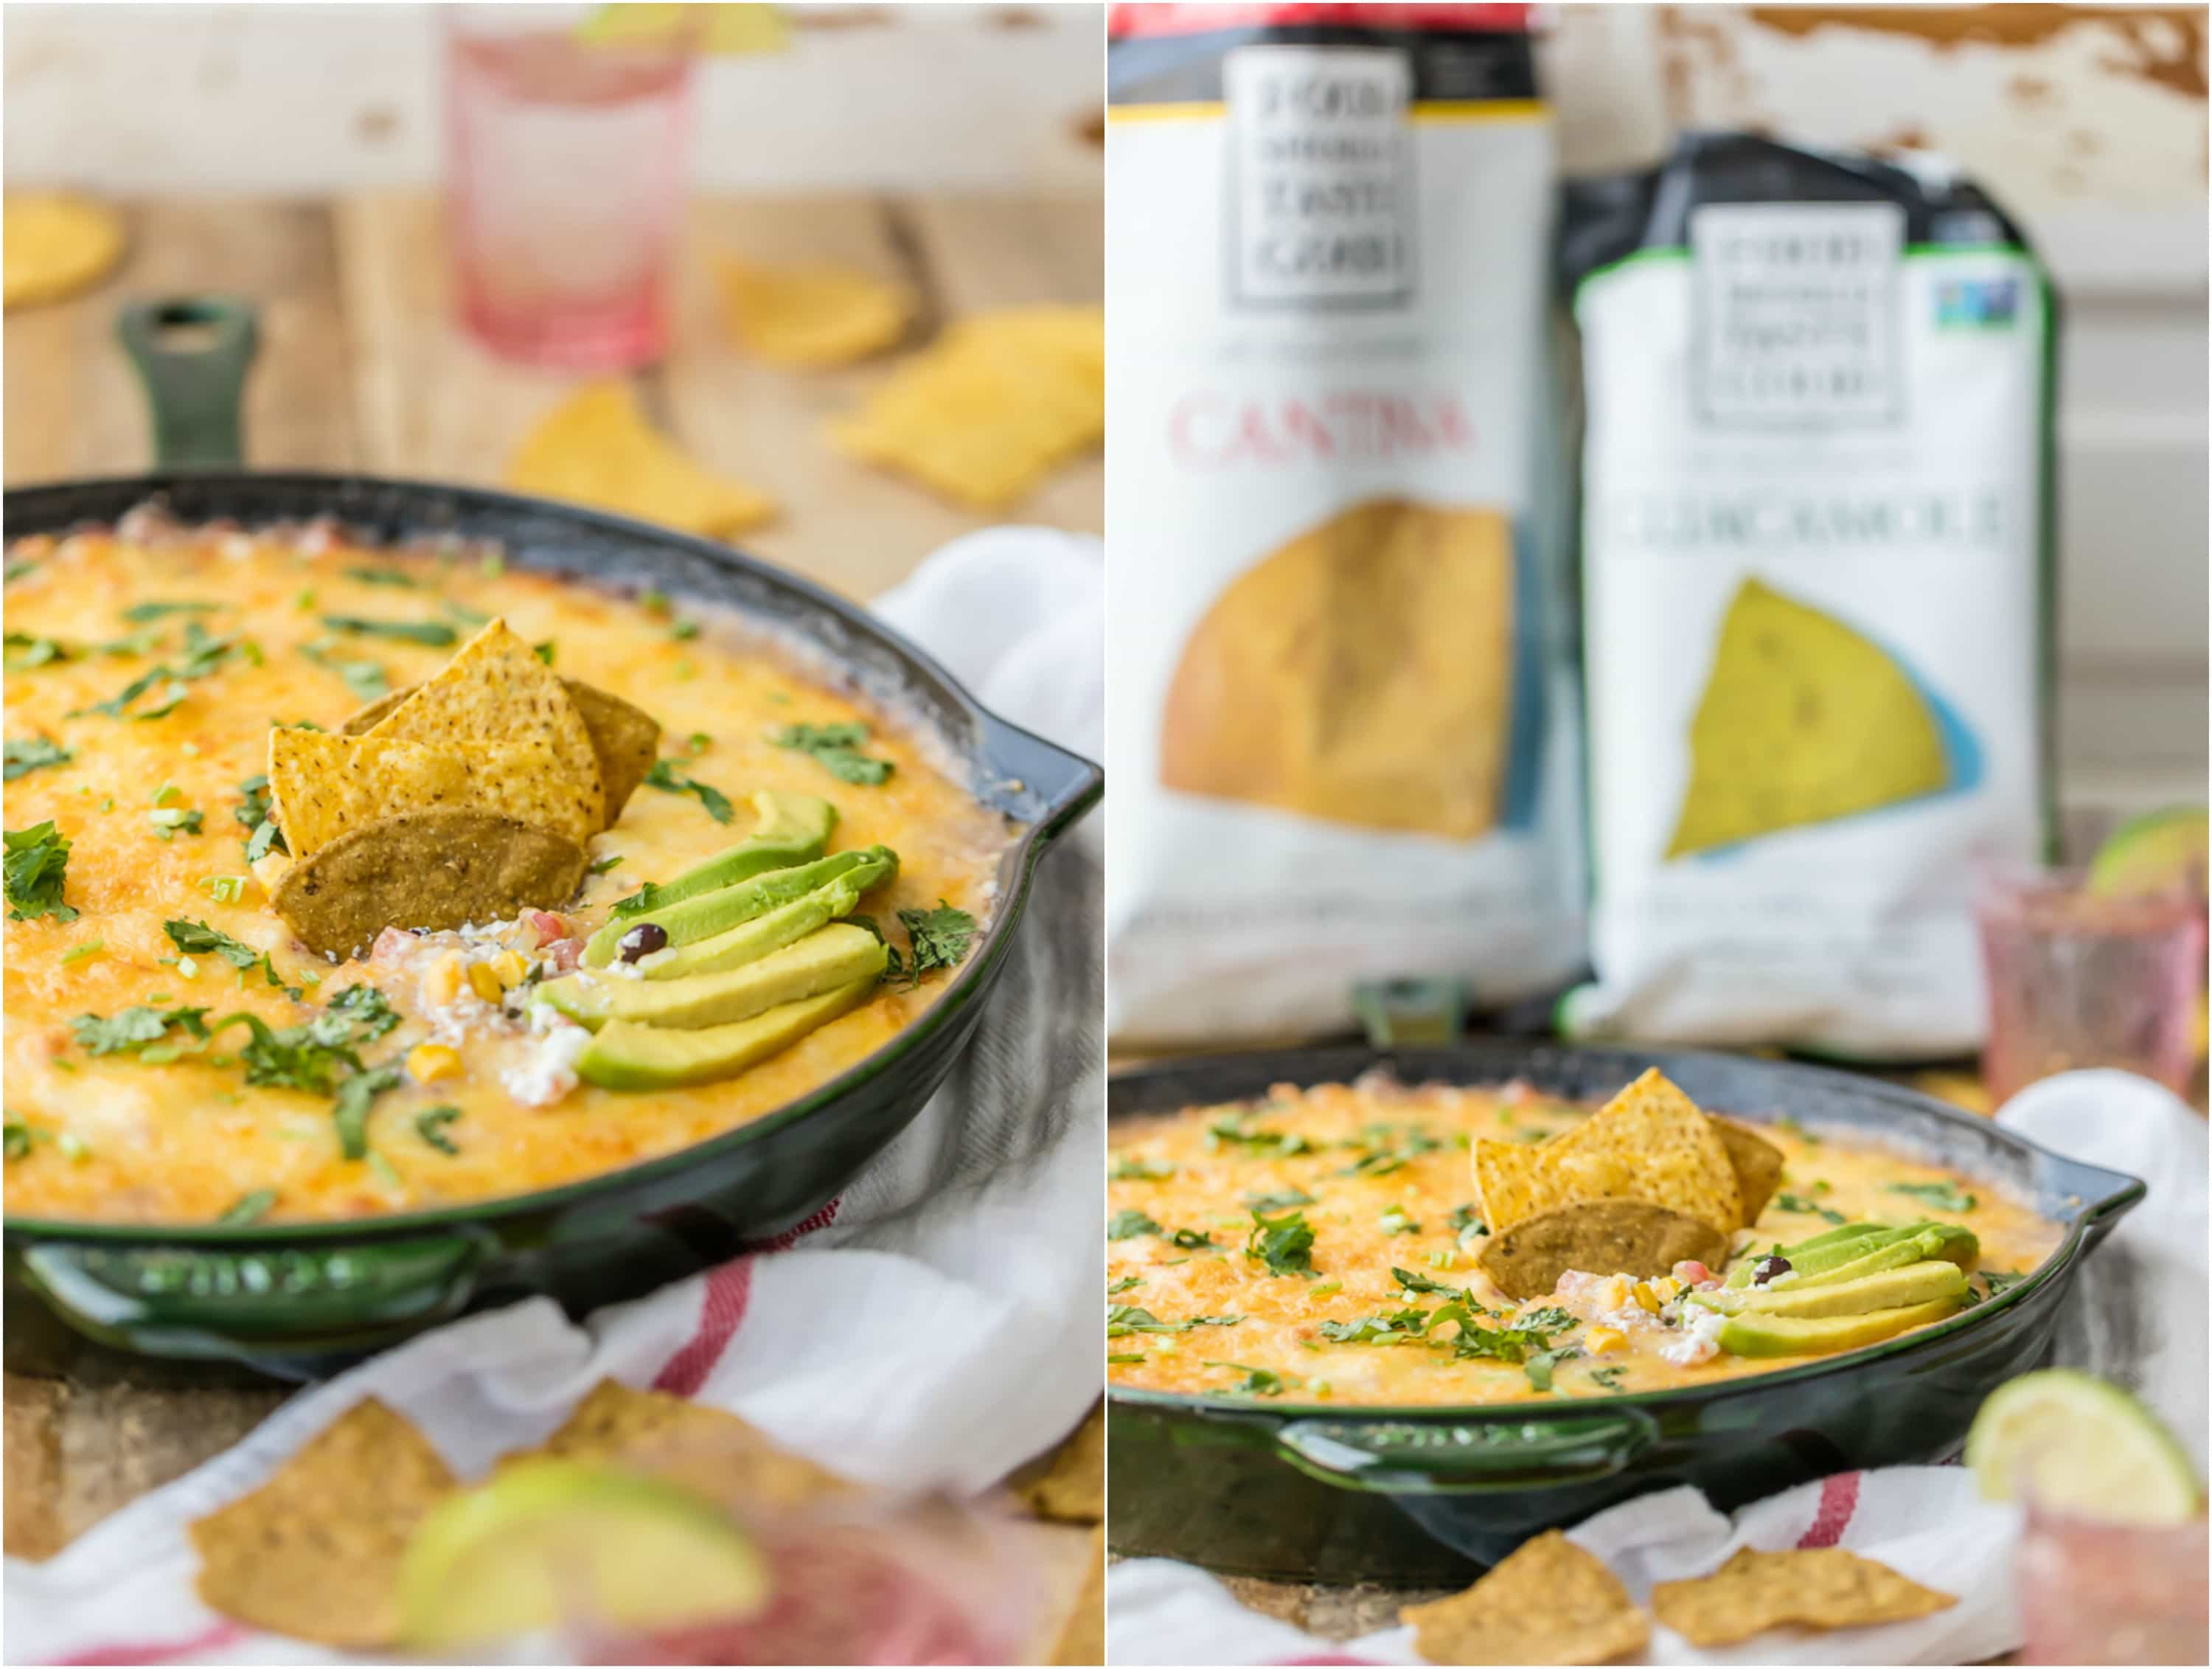 Who says 7 Layer Dip has to be cold? HOT 7 LAYER DIP SKILLET is the perfect tailgating dip for Cinco de Mayo! My favorite dip made in a skillet. YUM!